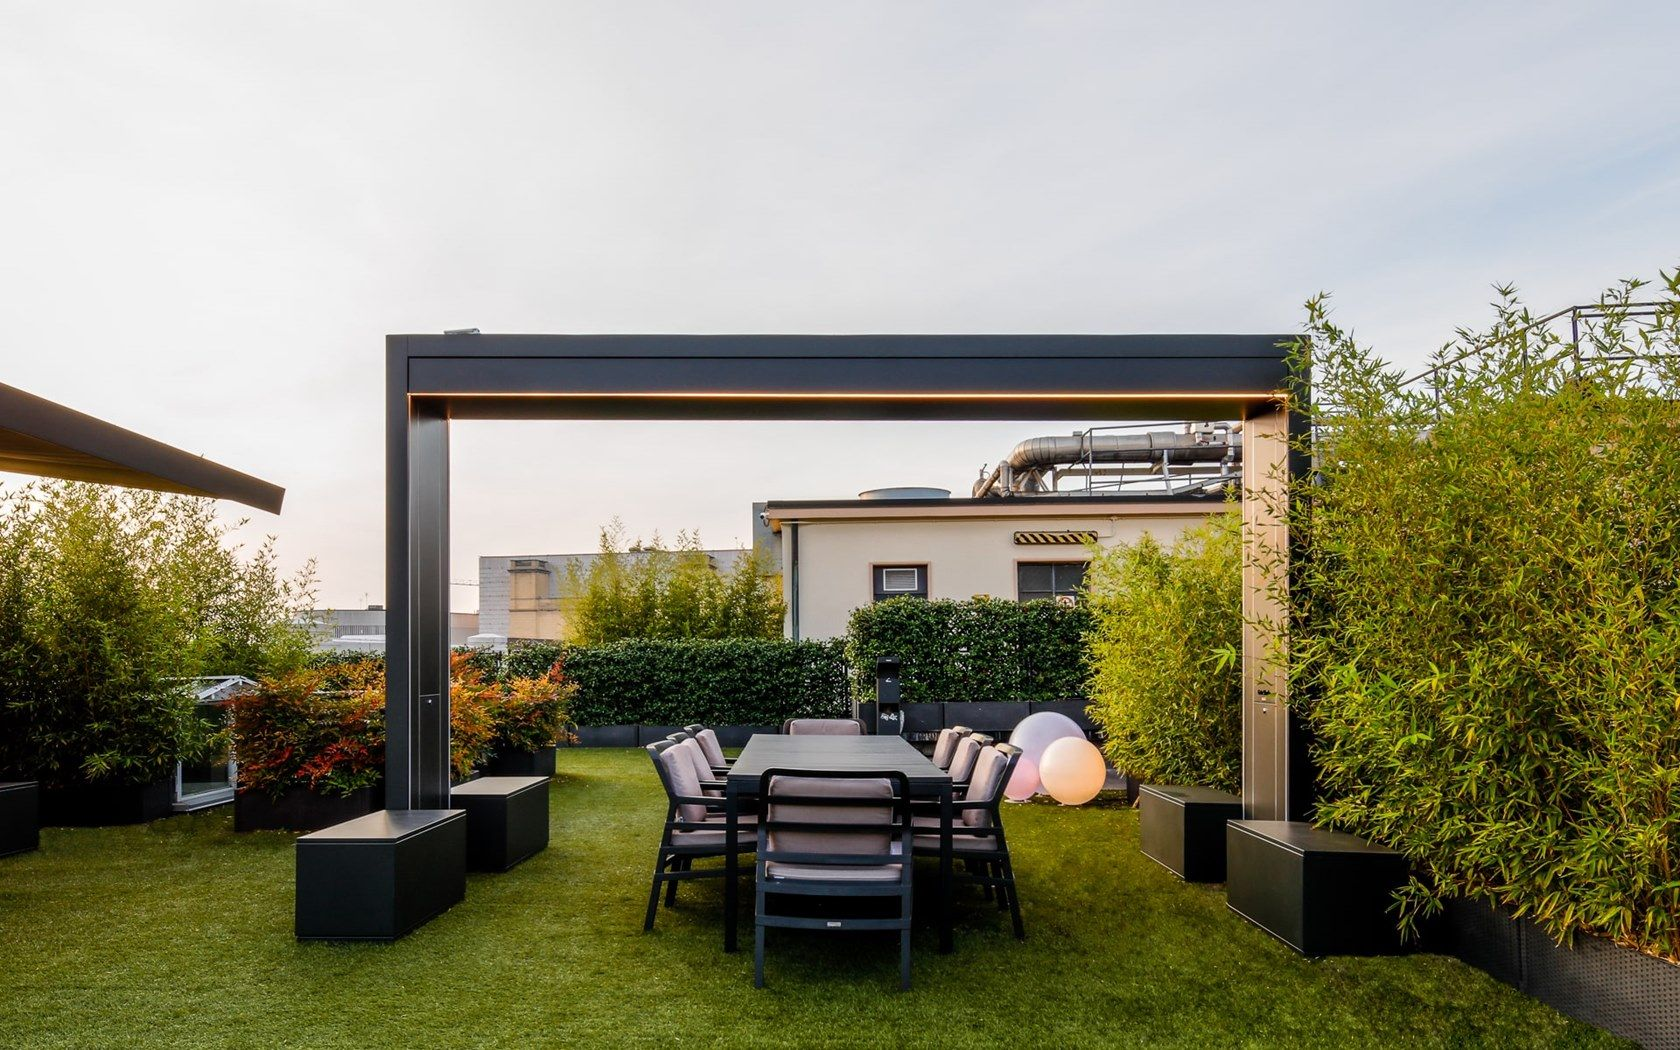 Freestanding Motorized Folding Arm Awning Gate Shade By Unosider Design Nicolas Thomkins In 2020 Patio Shade Patio Backyard Design